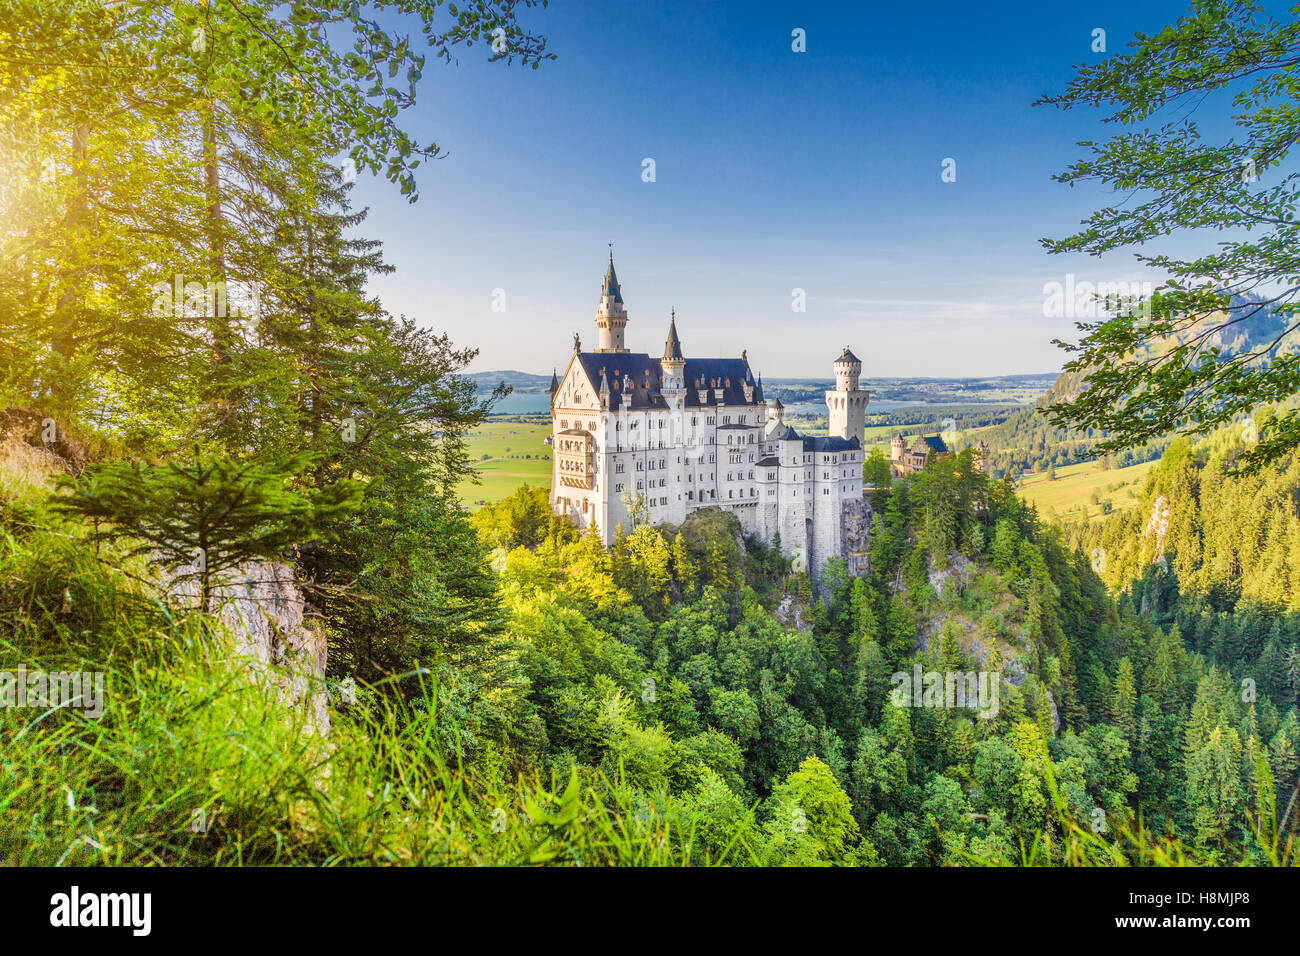 Classic view of world-famous Neuschwanstein Castle, one of Europe's most visited castles, at sunset, Bavaria, Germany Stock Photo